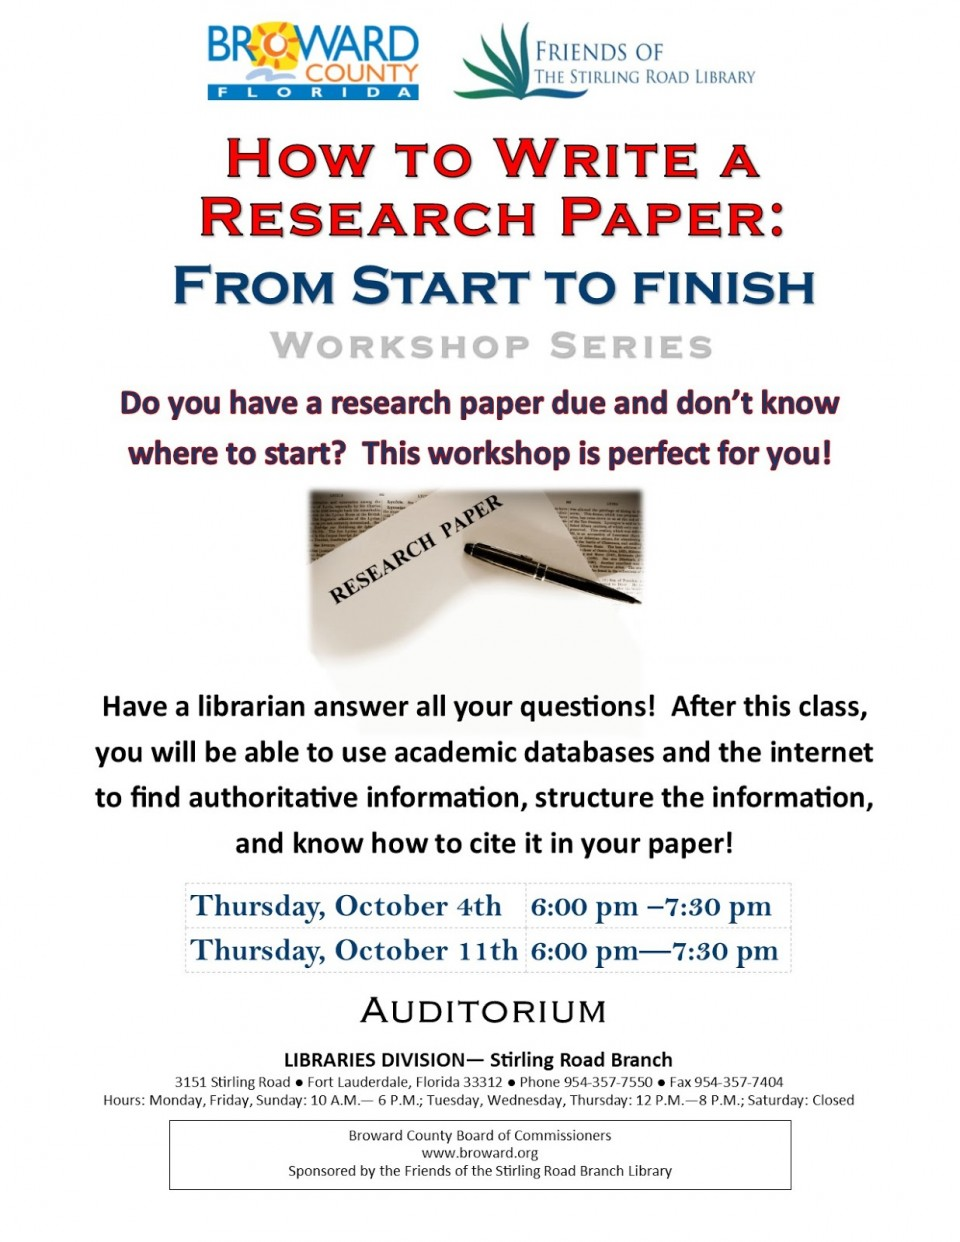 014 How To Write Research Paper Frightening Abstract For Sample Proposal A Summary Of Your 960